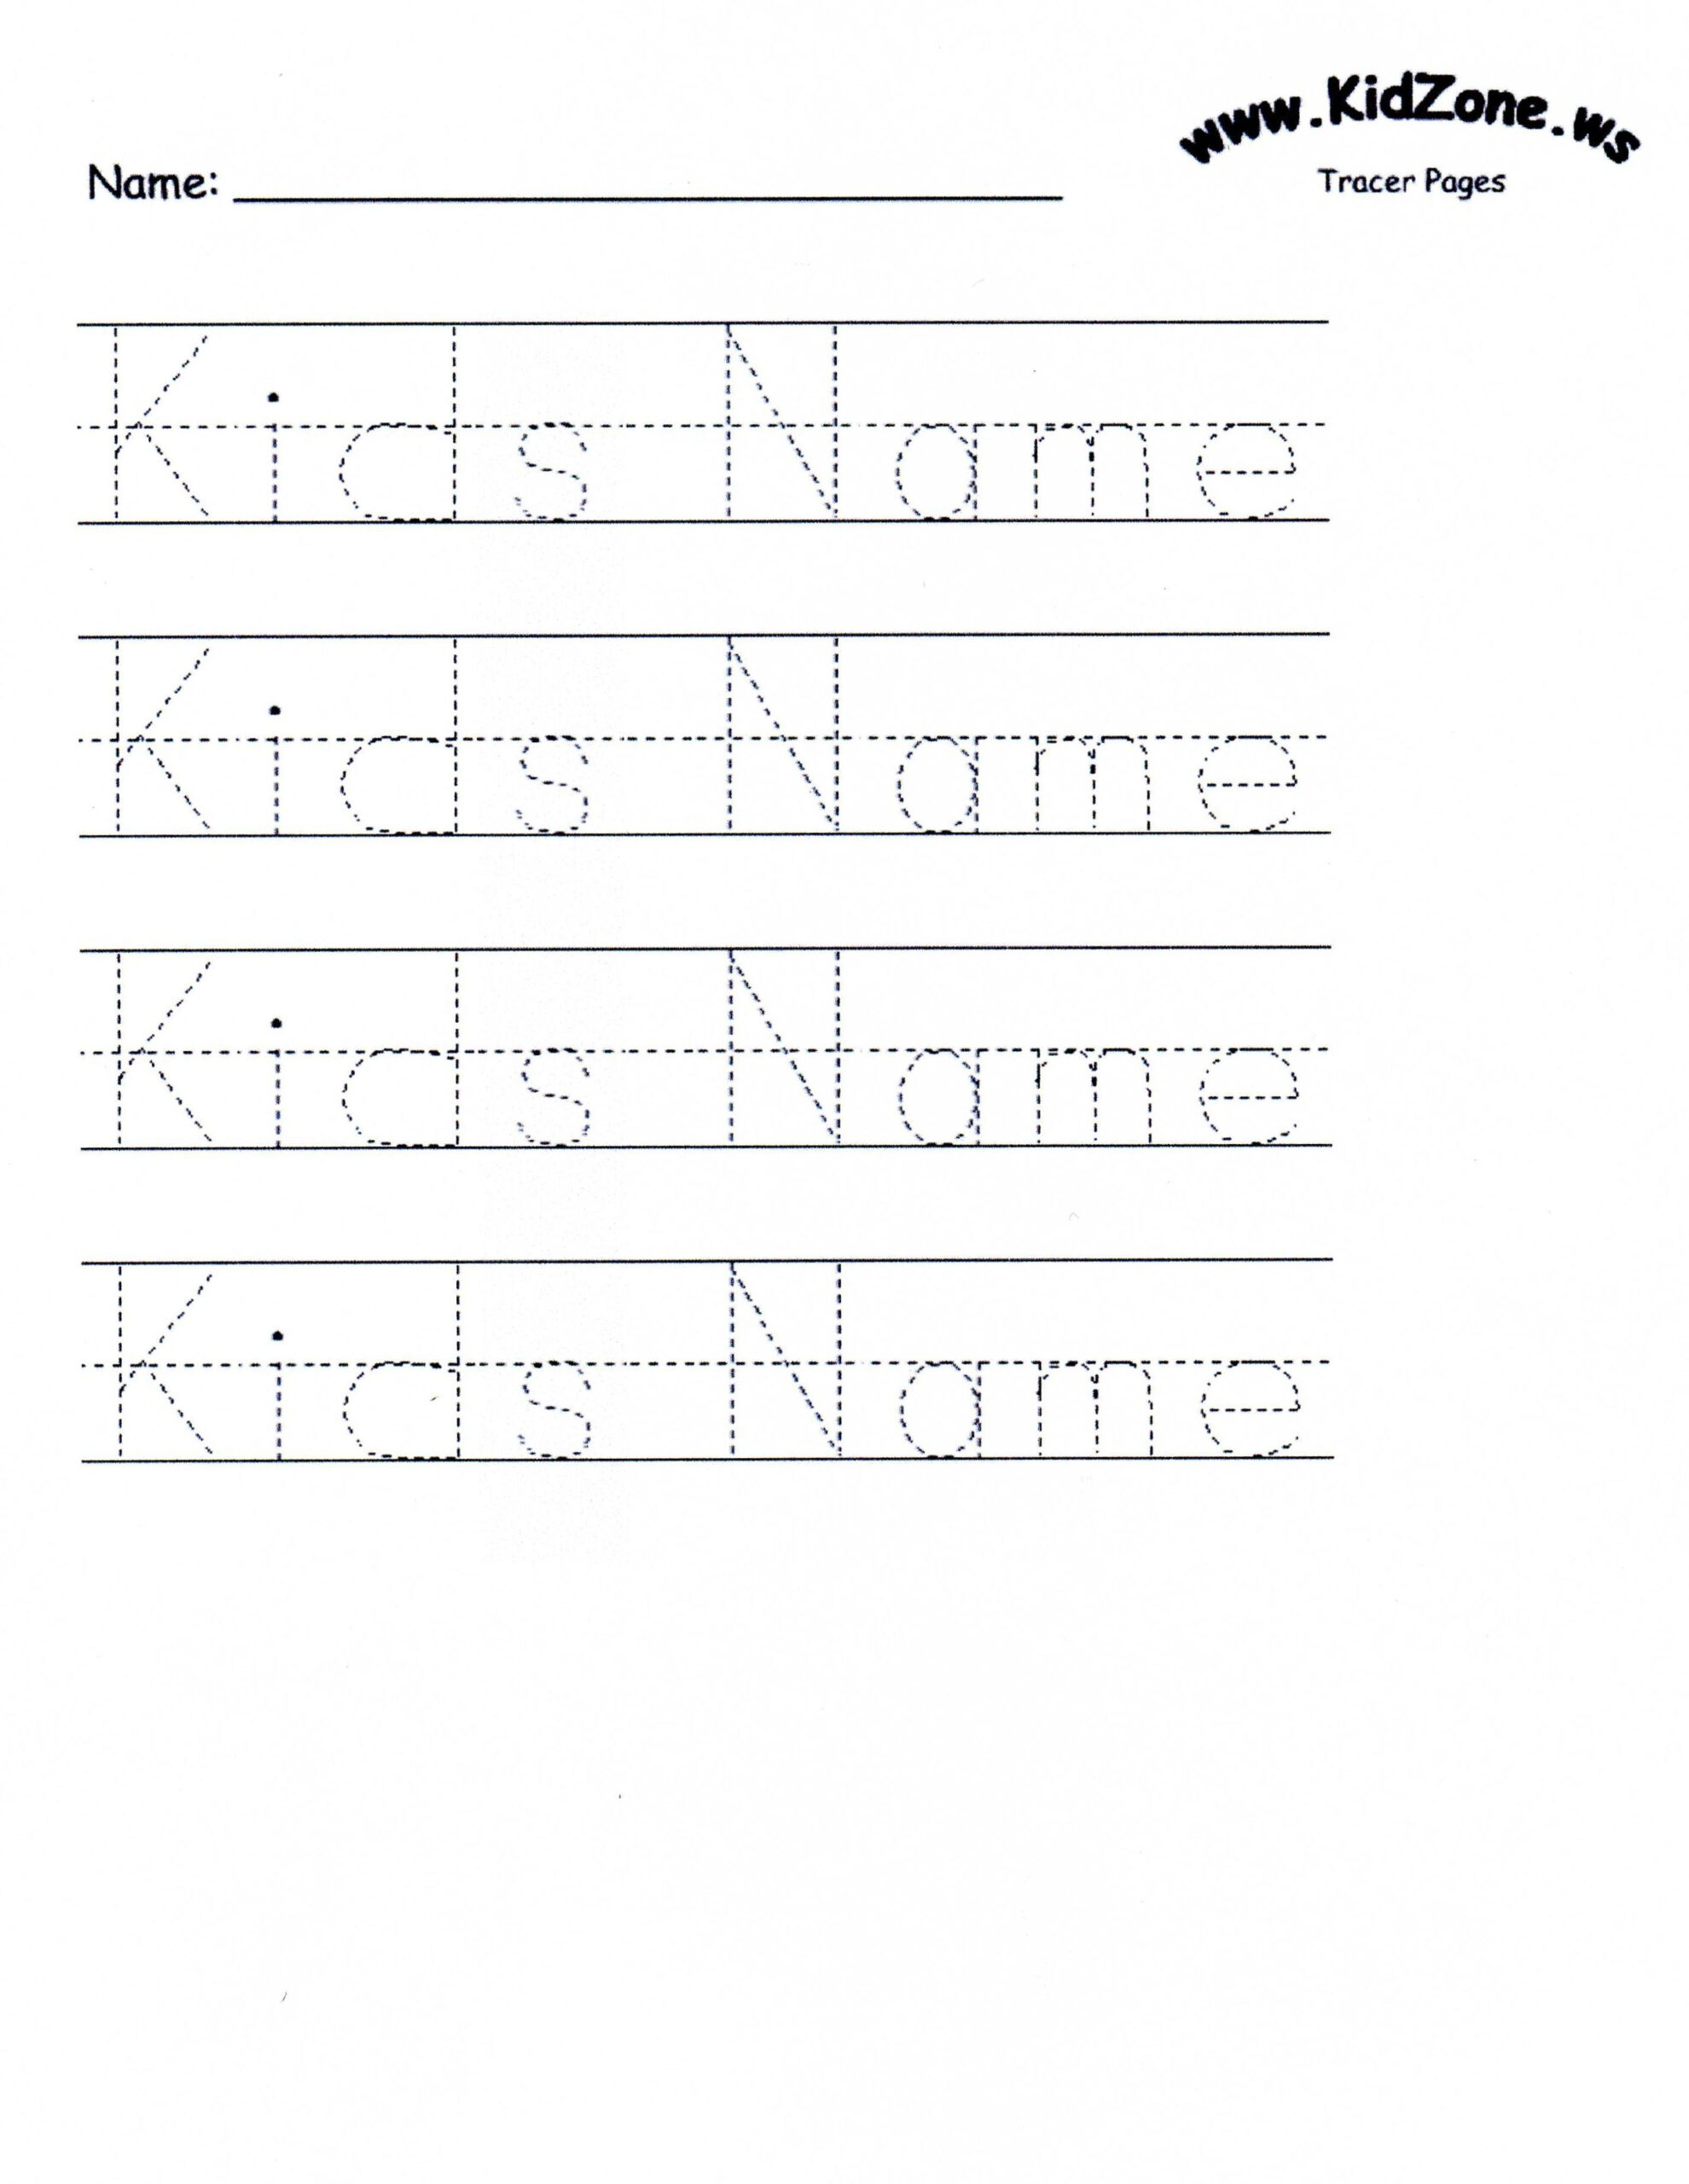 Custom Tracer Pages | Name Tracing Worksheets, Tracing pertaining to Name Tracing In Cursive